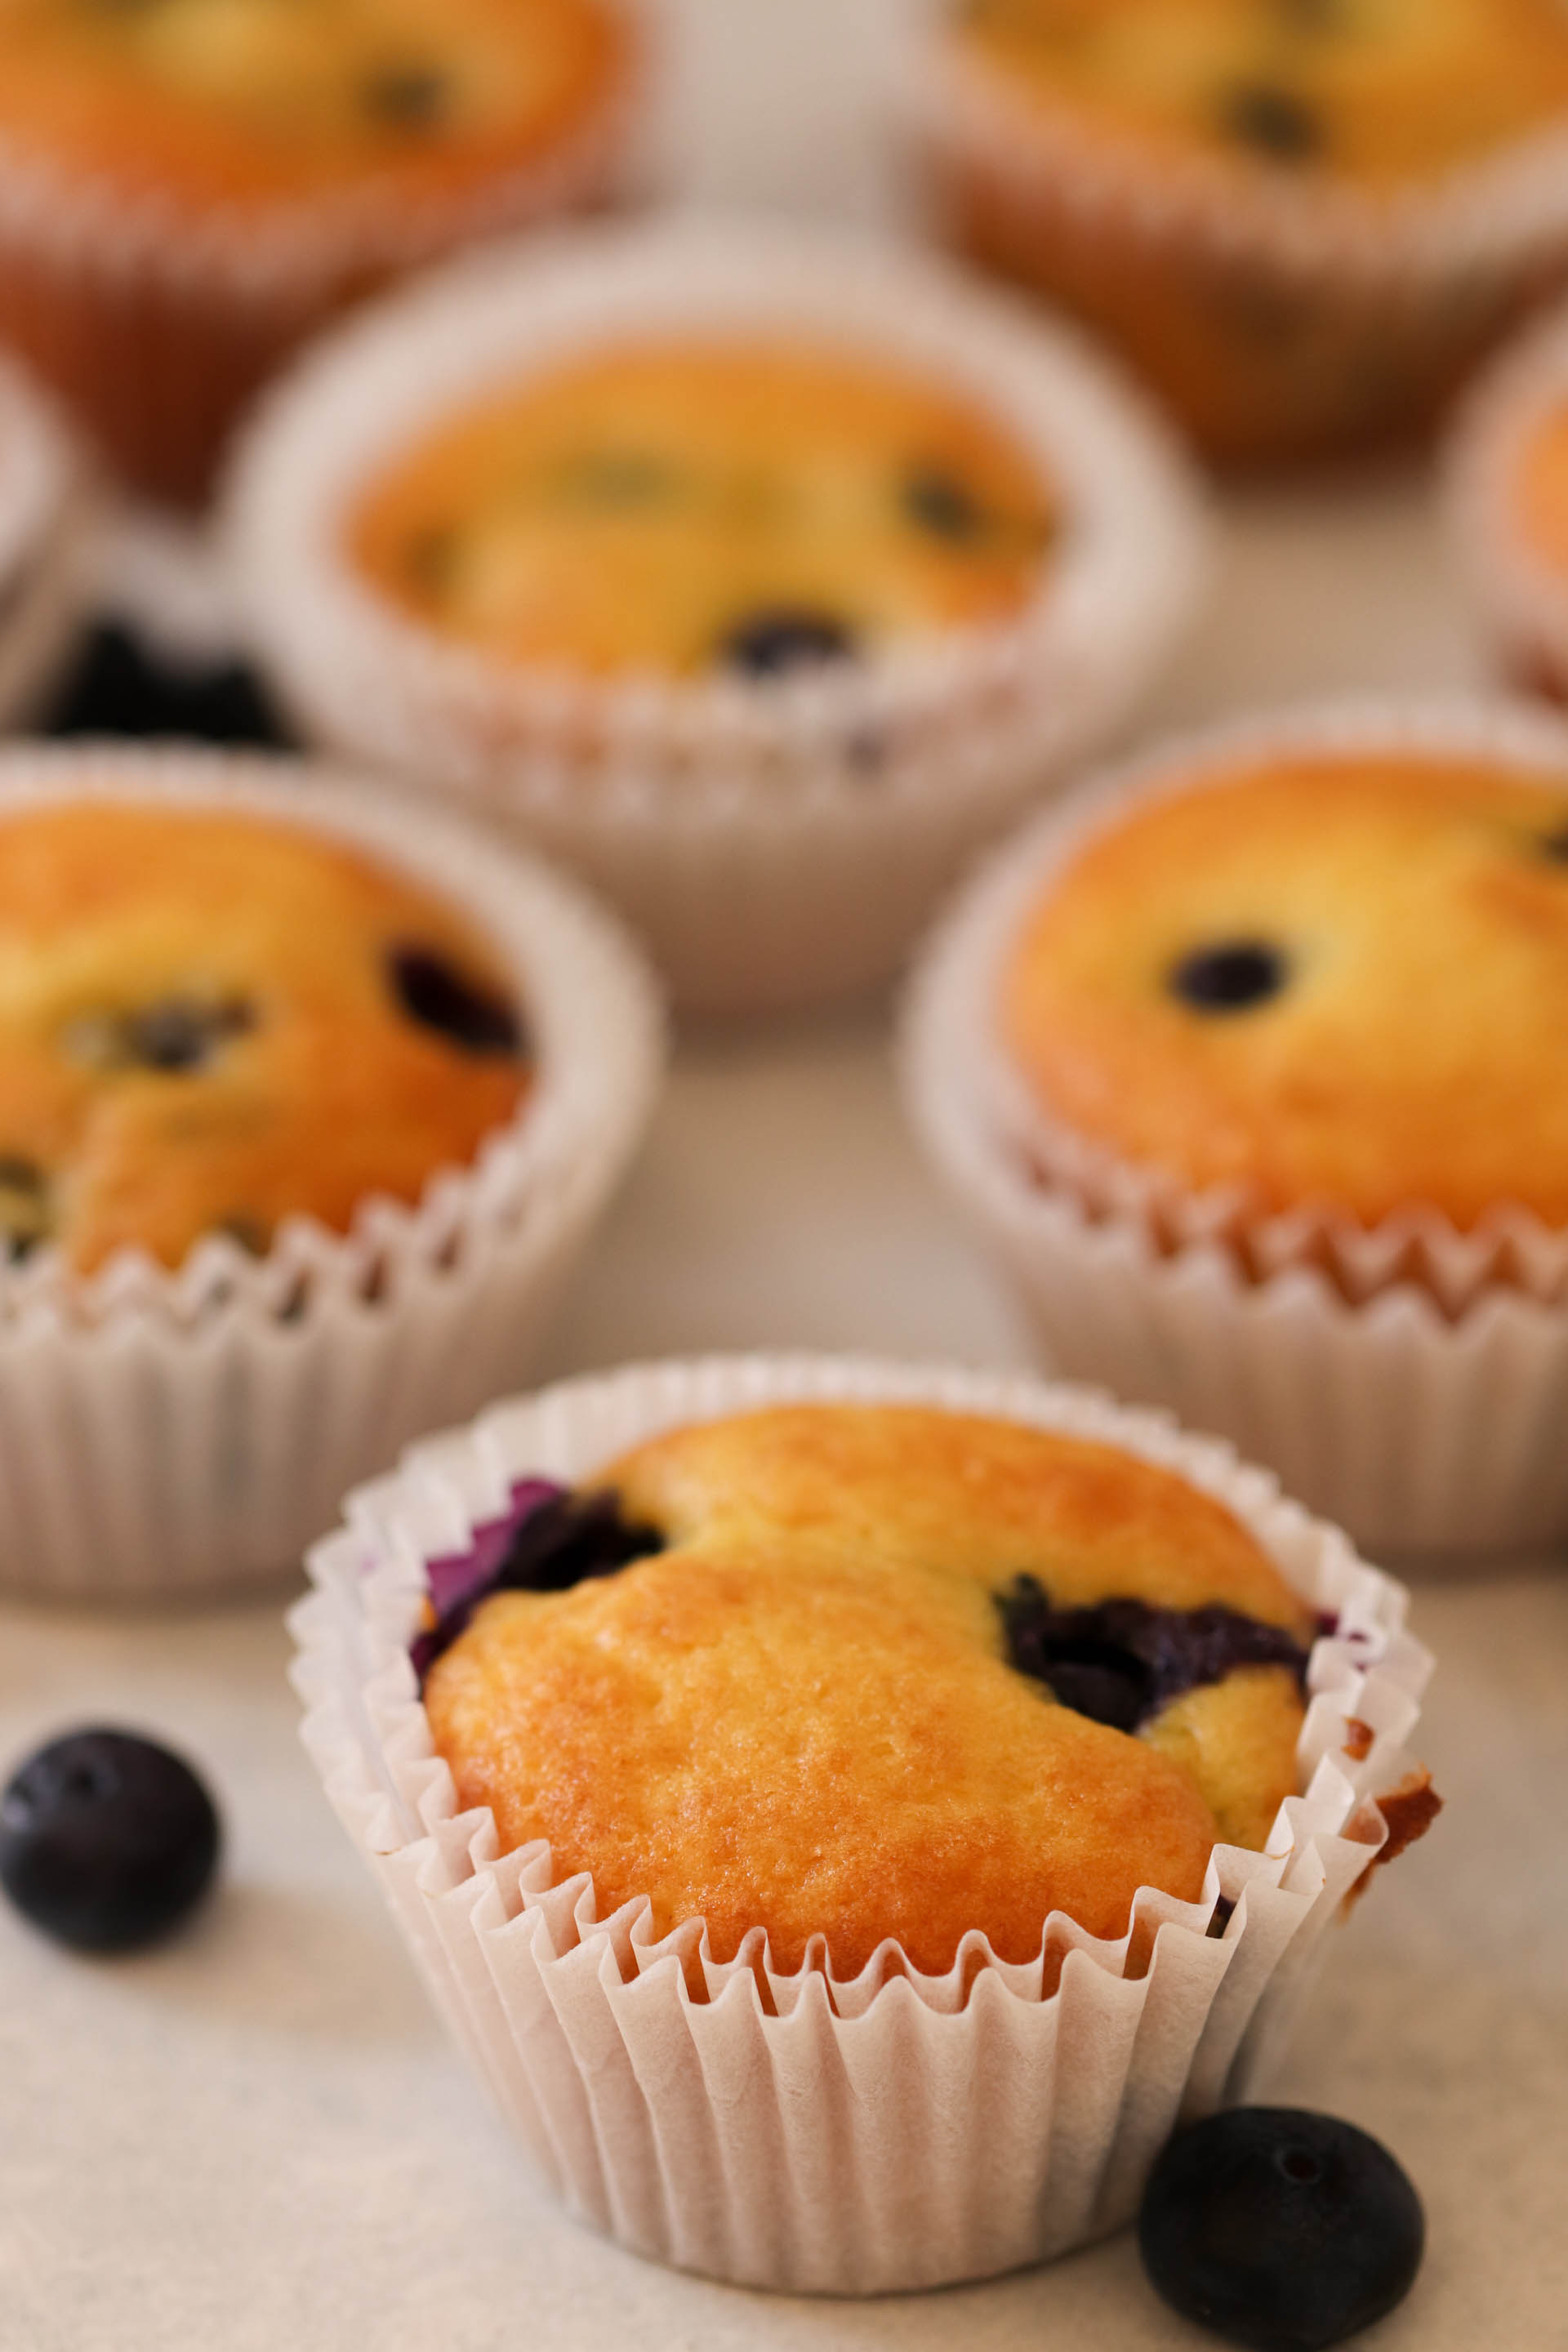 Cake Mix Blueberry Muffins Recipe